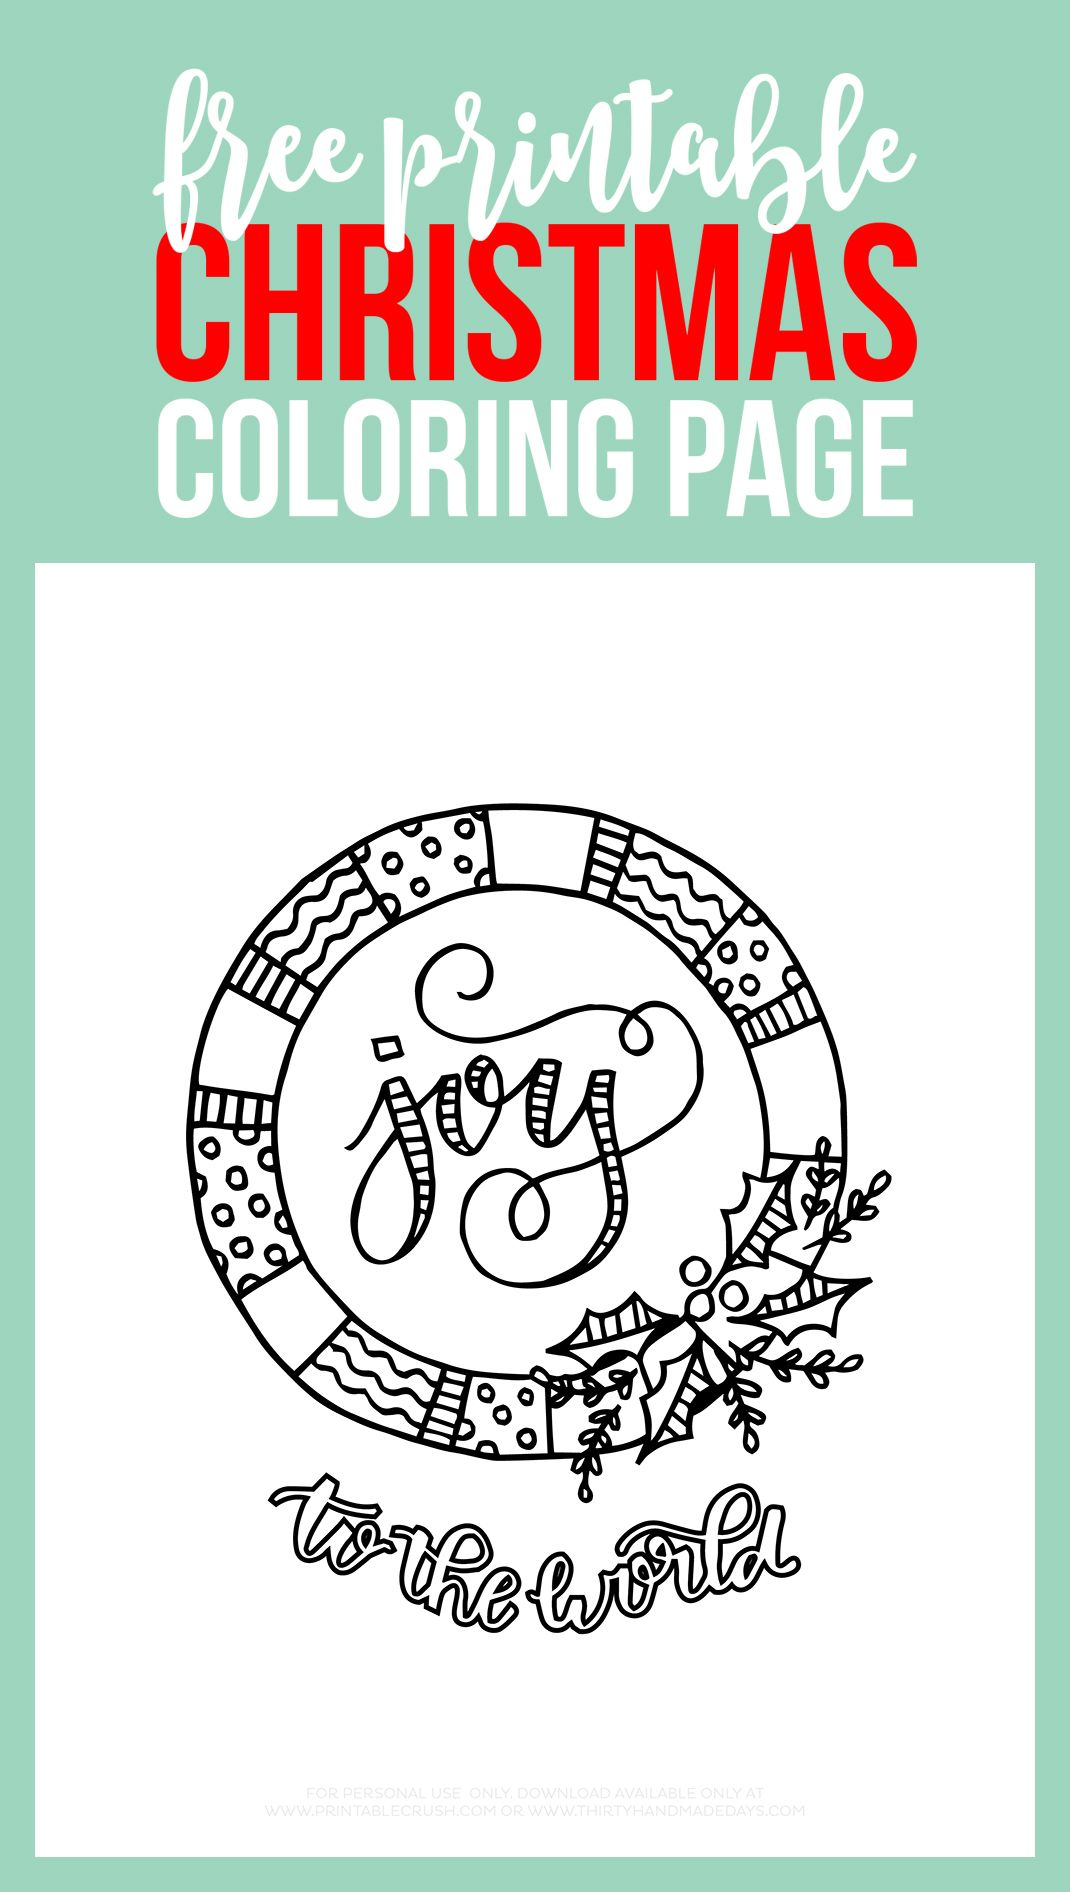 Print Off Some Of These FREE Printable Christmas Coloring Page For A Fun Activity Kids Or Adults This Holiday Season